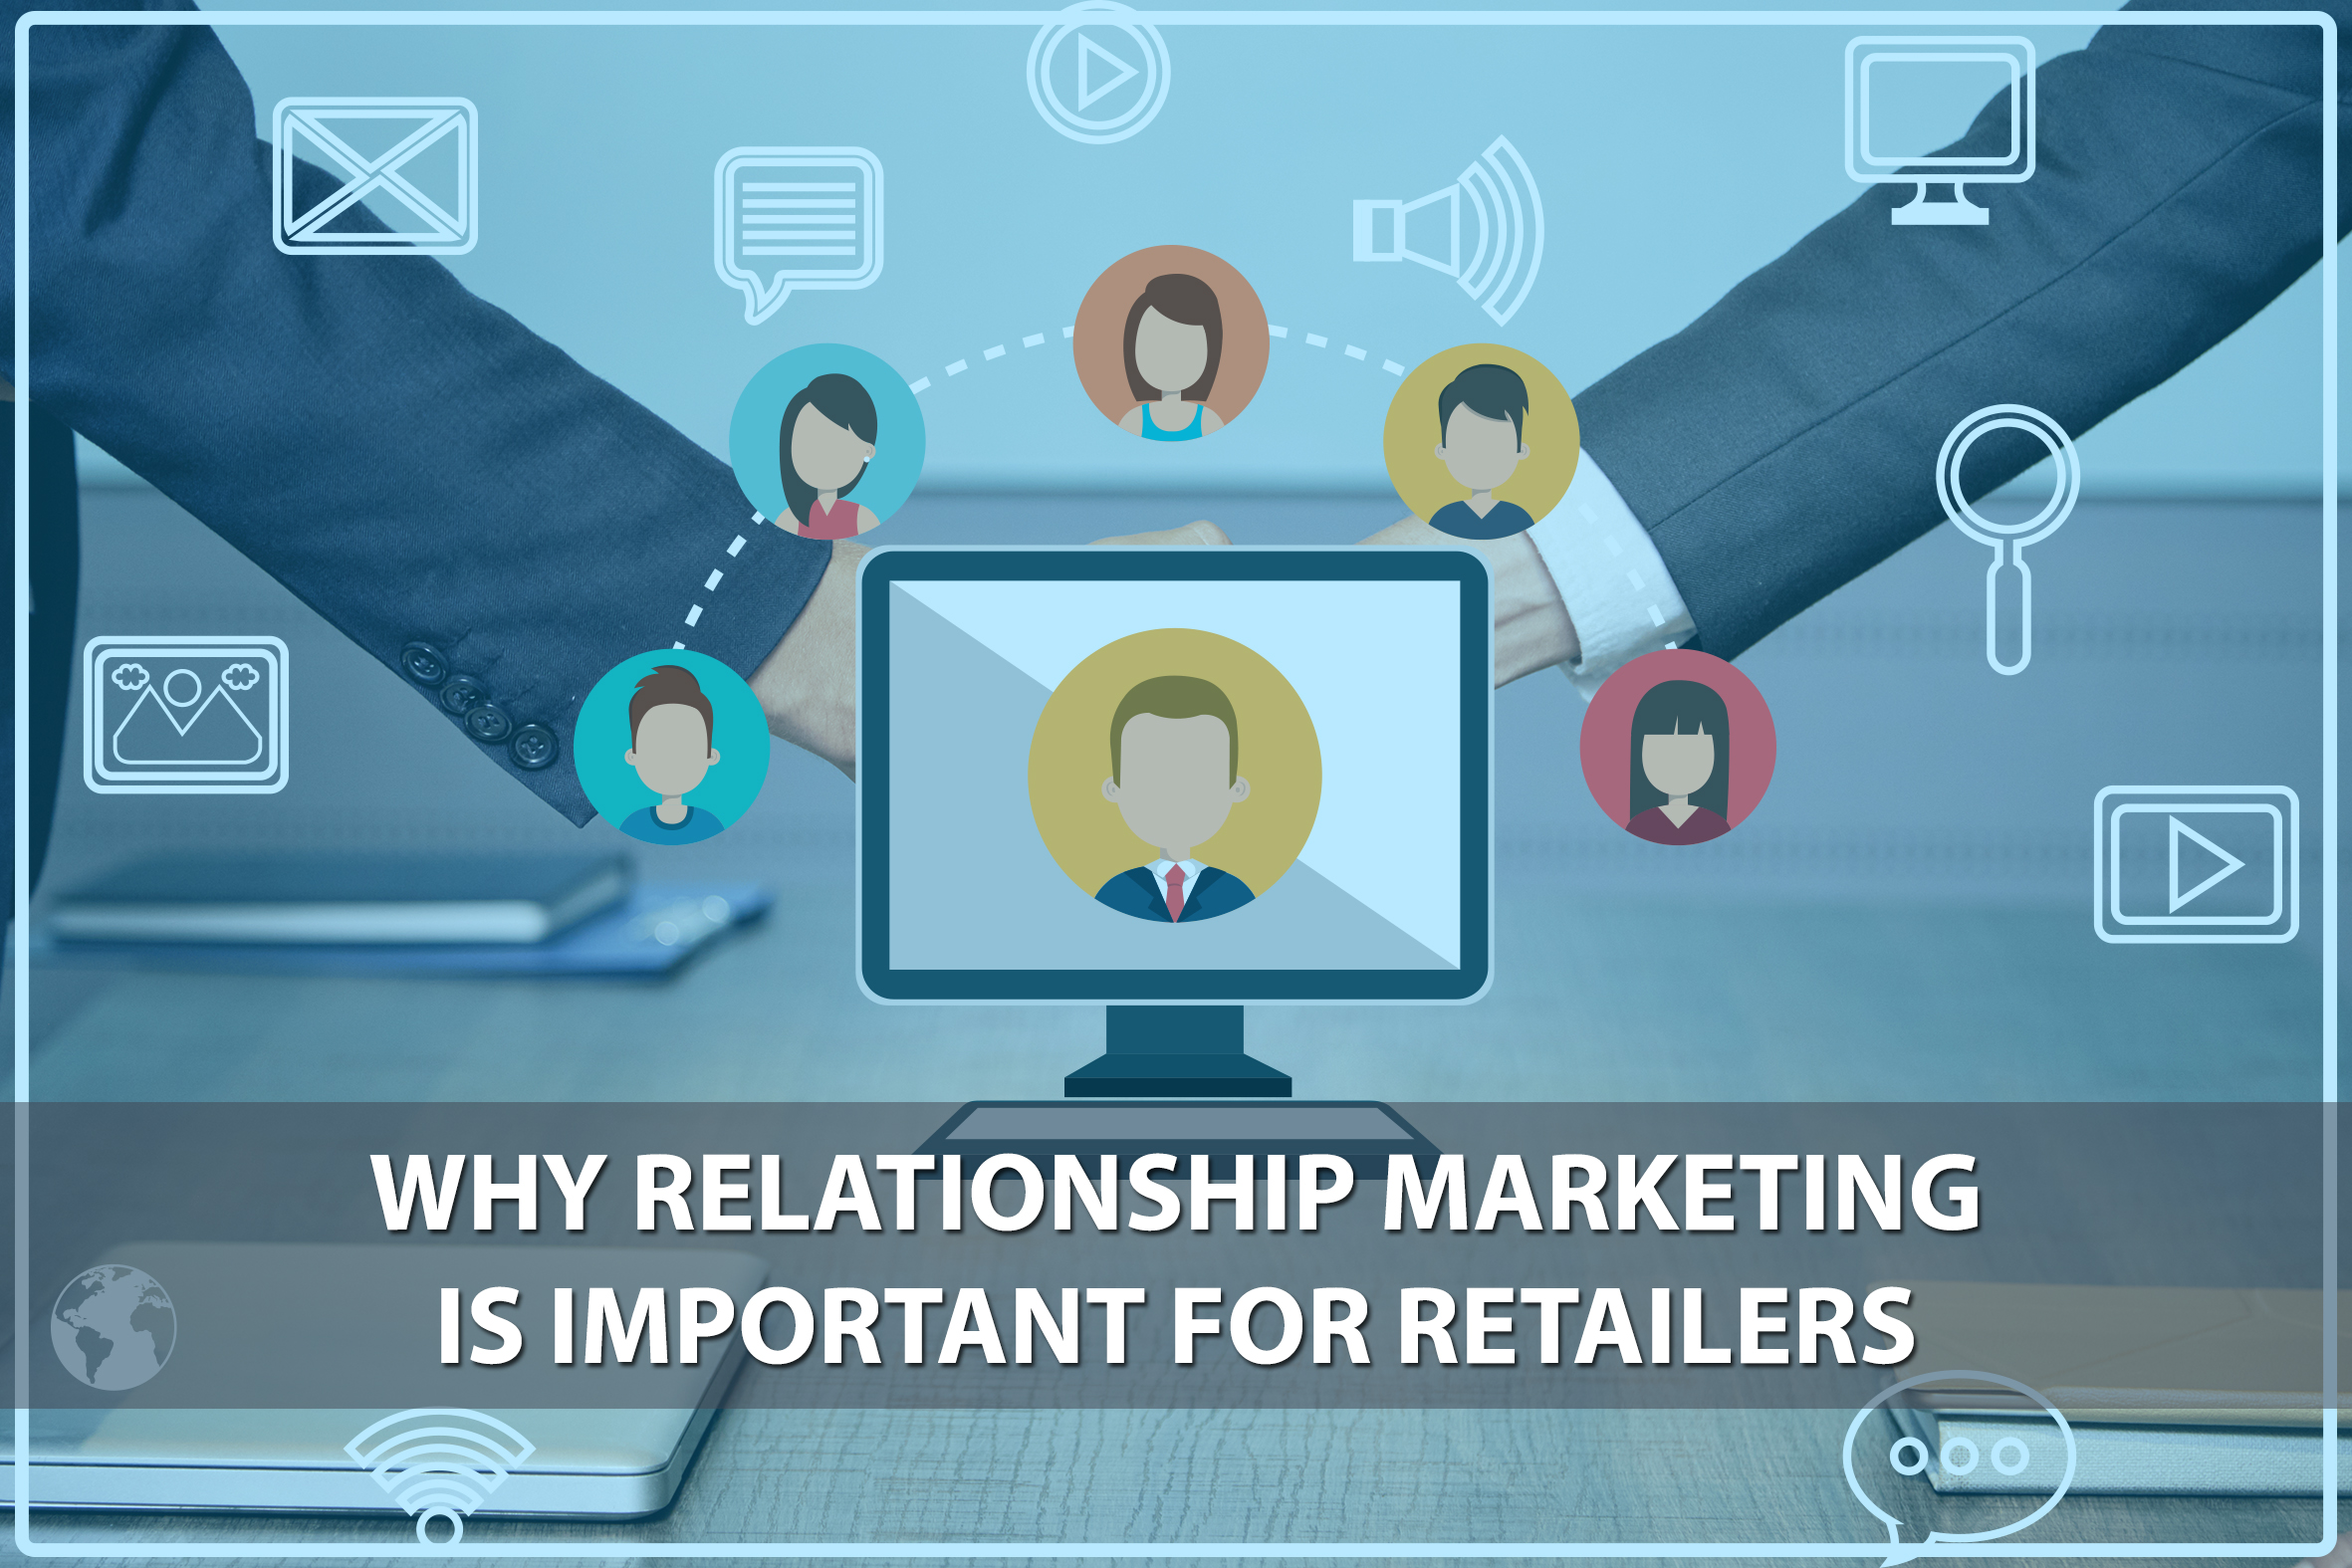 Why Relationship Marketing is important for Retailers